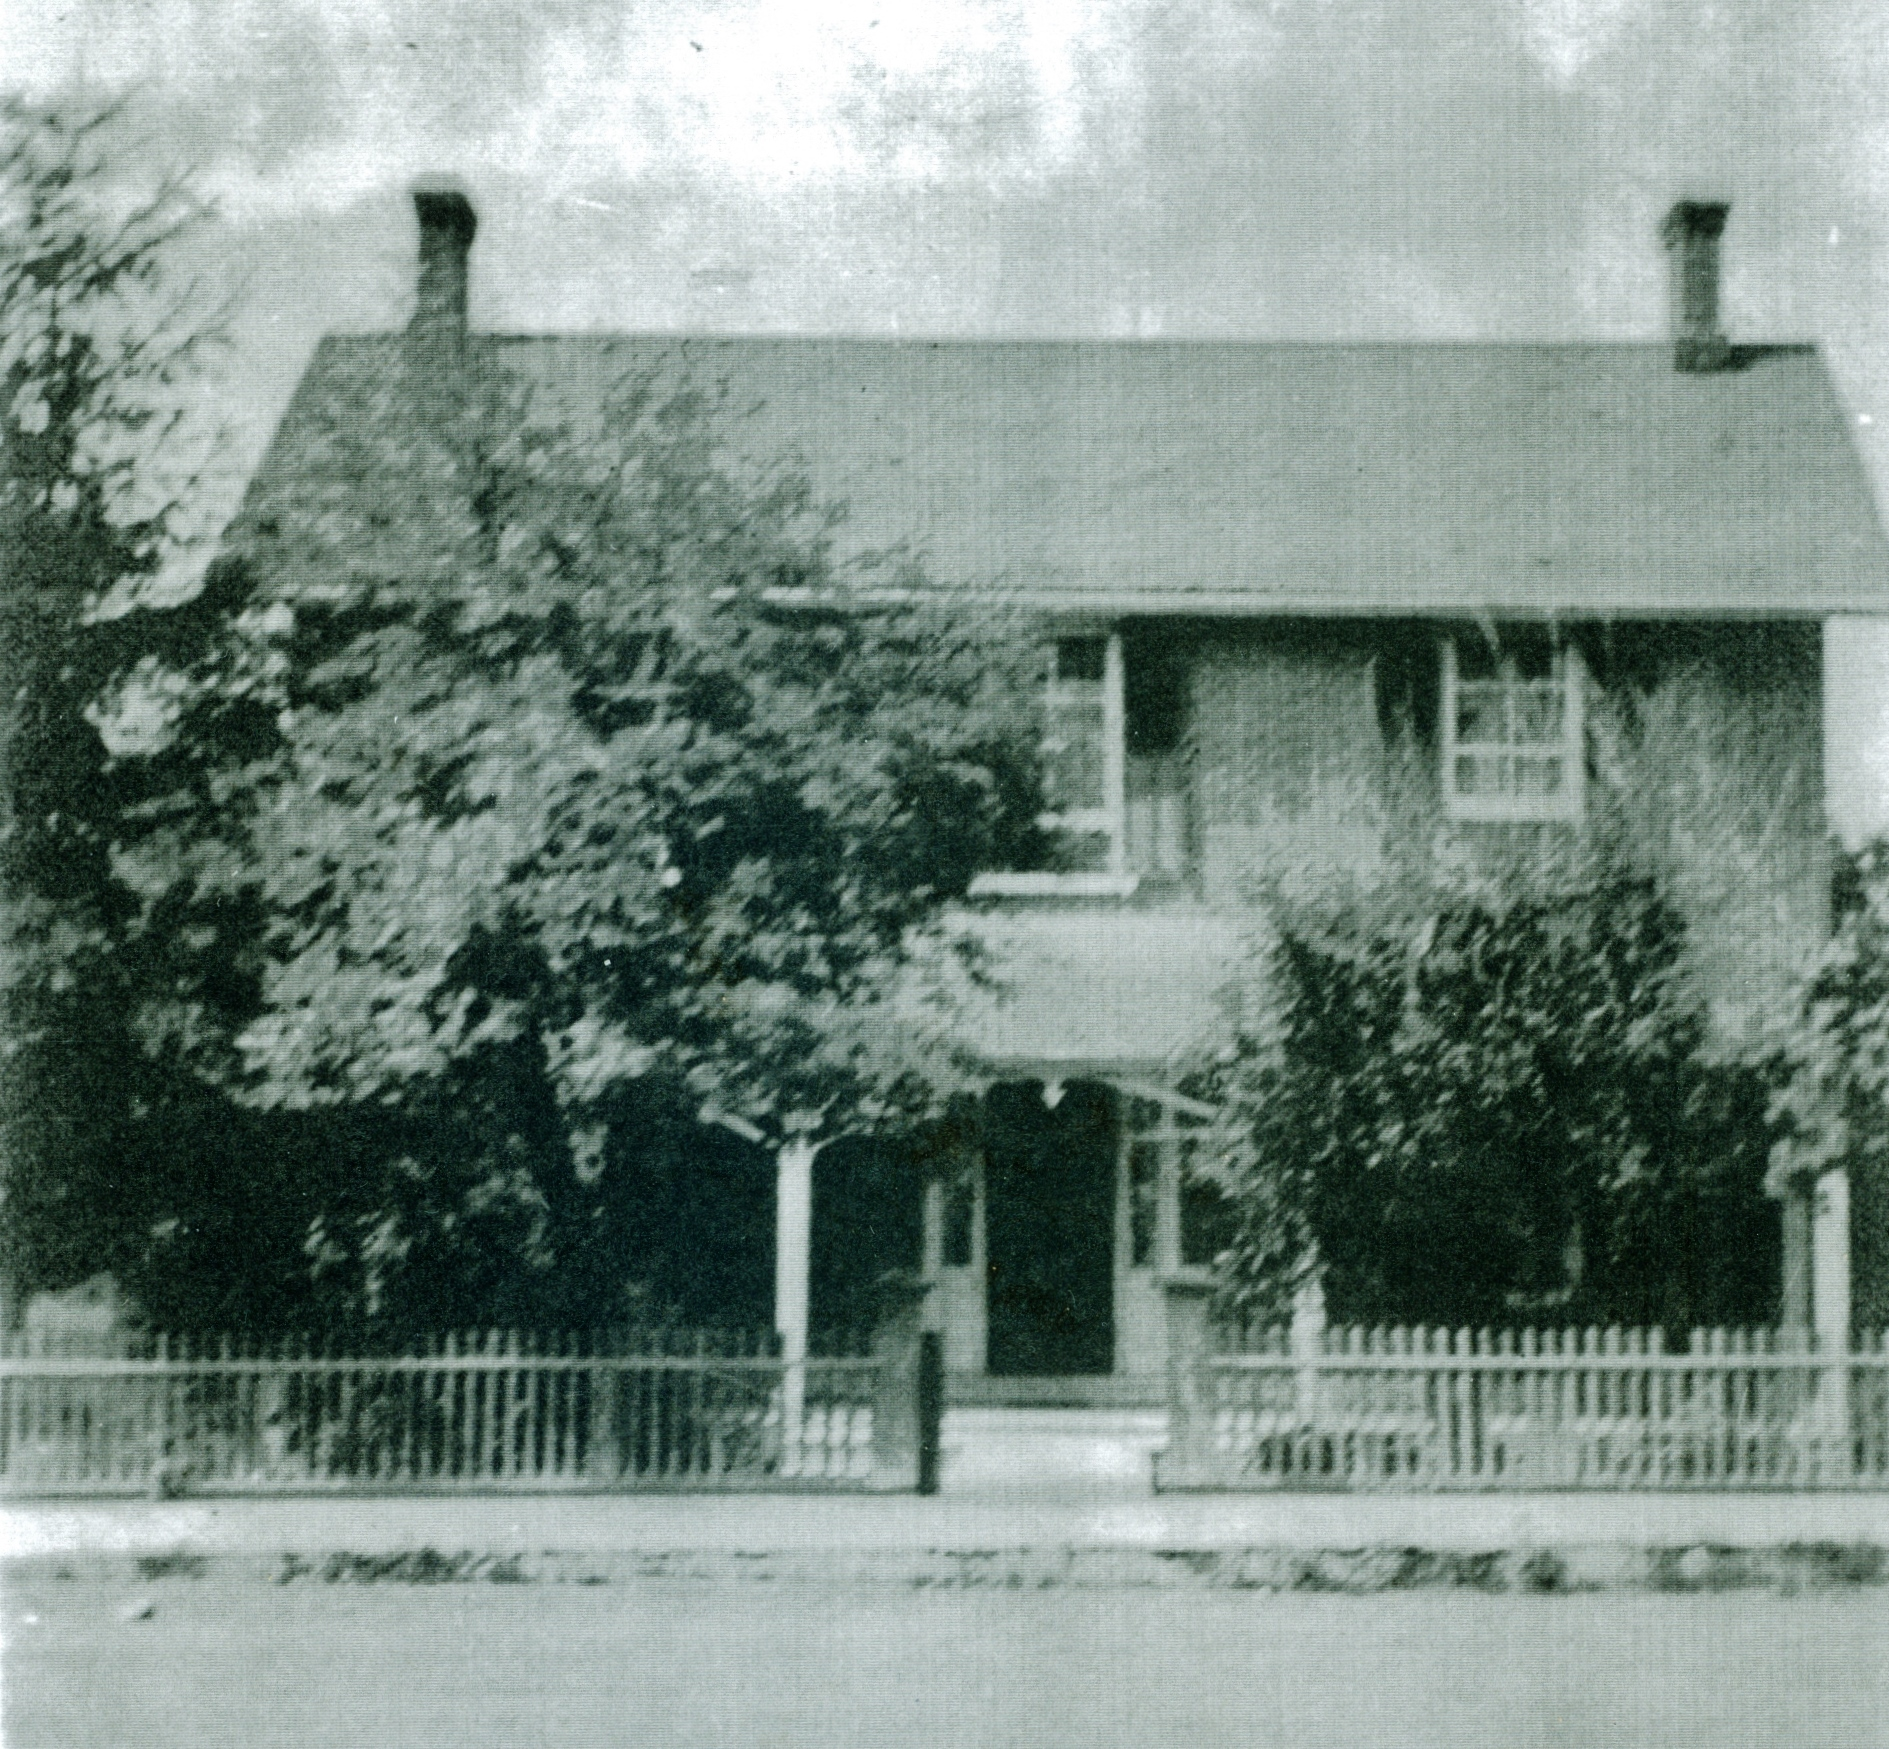 George William Bleecker house. 1st brick home in Marmora (beside Parkin House) Later lived in by his son George Bartholomew